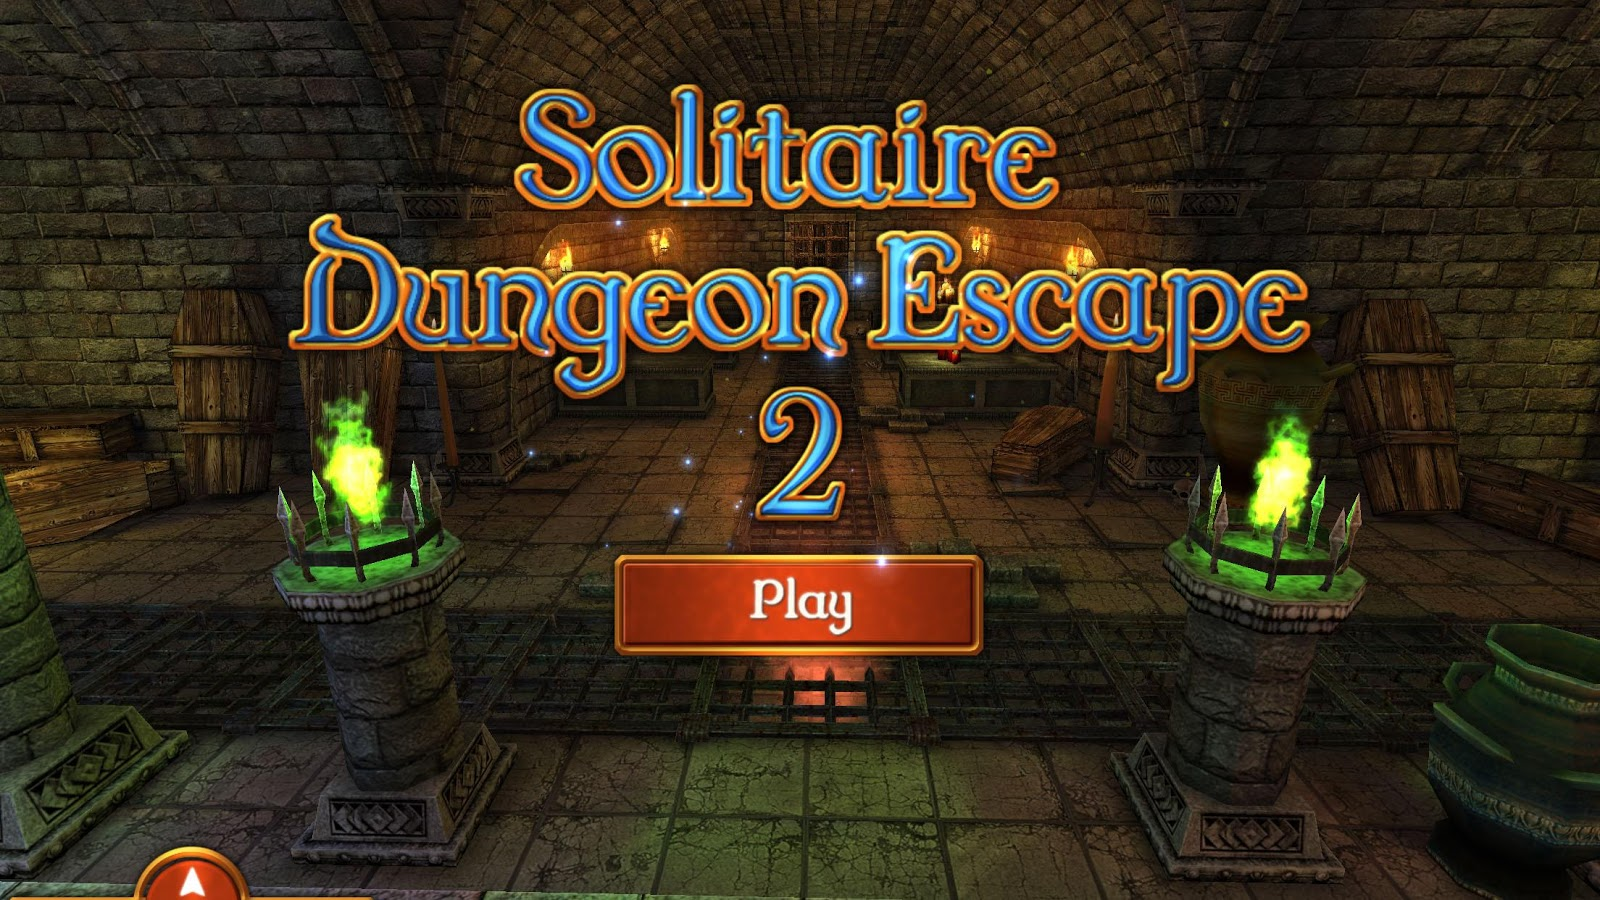 Solitaire Dungeon Escape 2 Screenshot 0